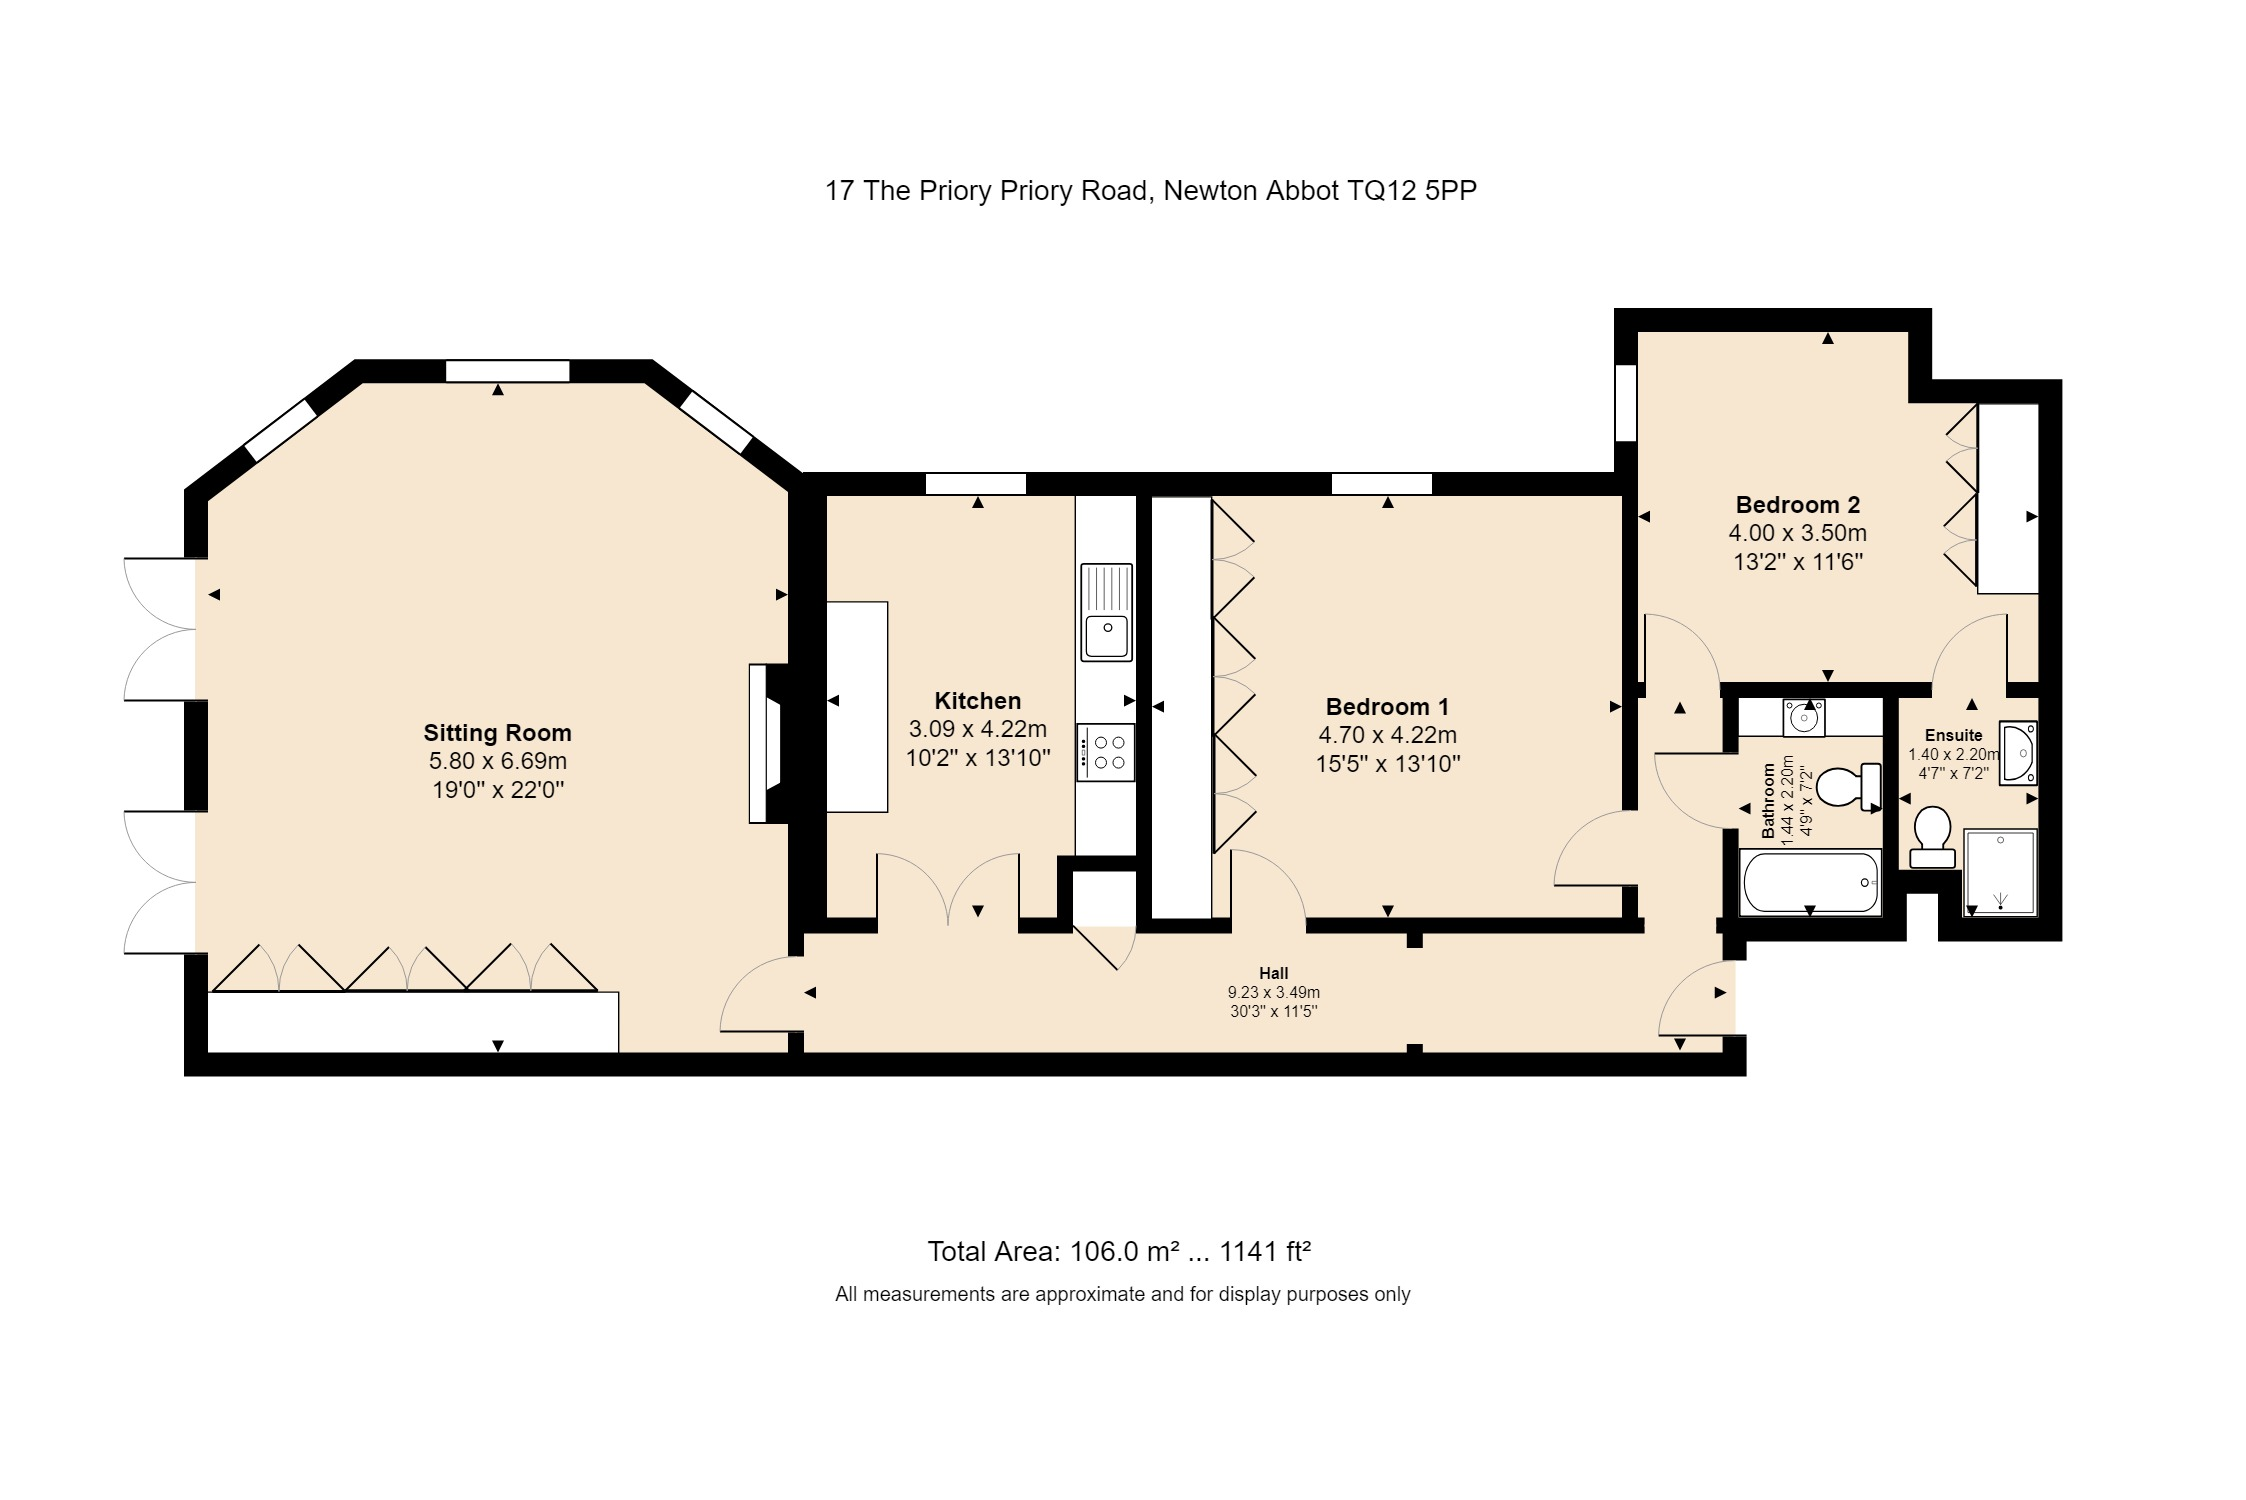 17 The Priory Floorplan